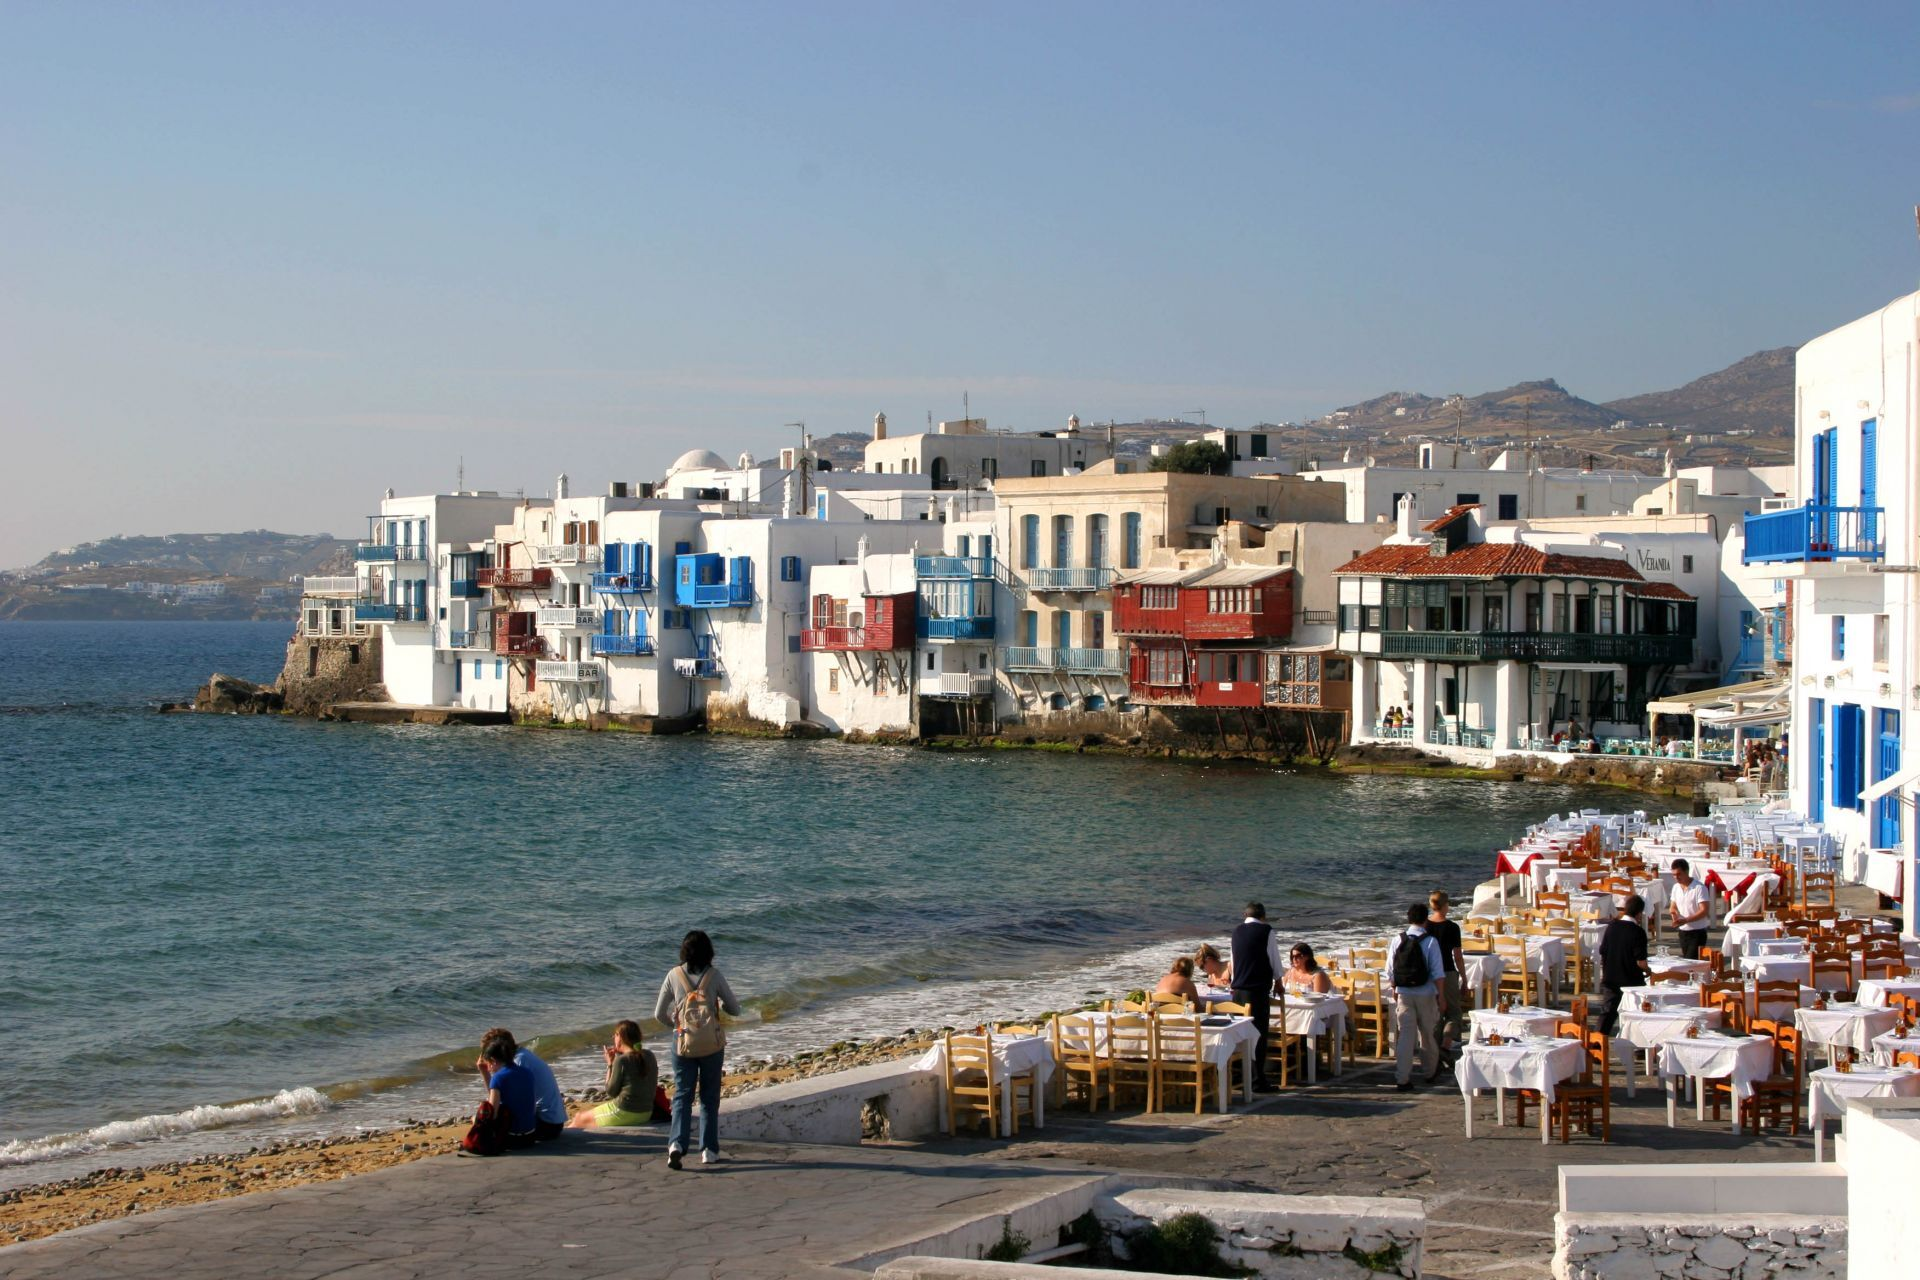 Places to eat and drink in Mykonos